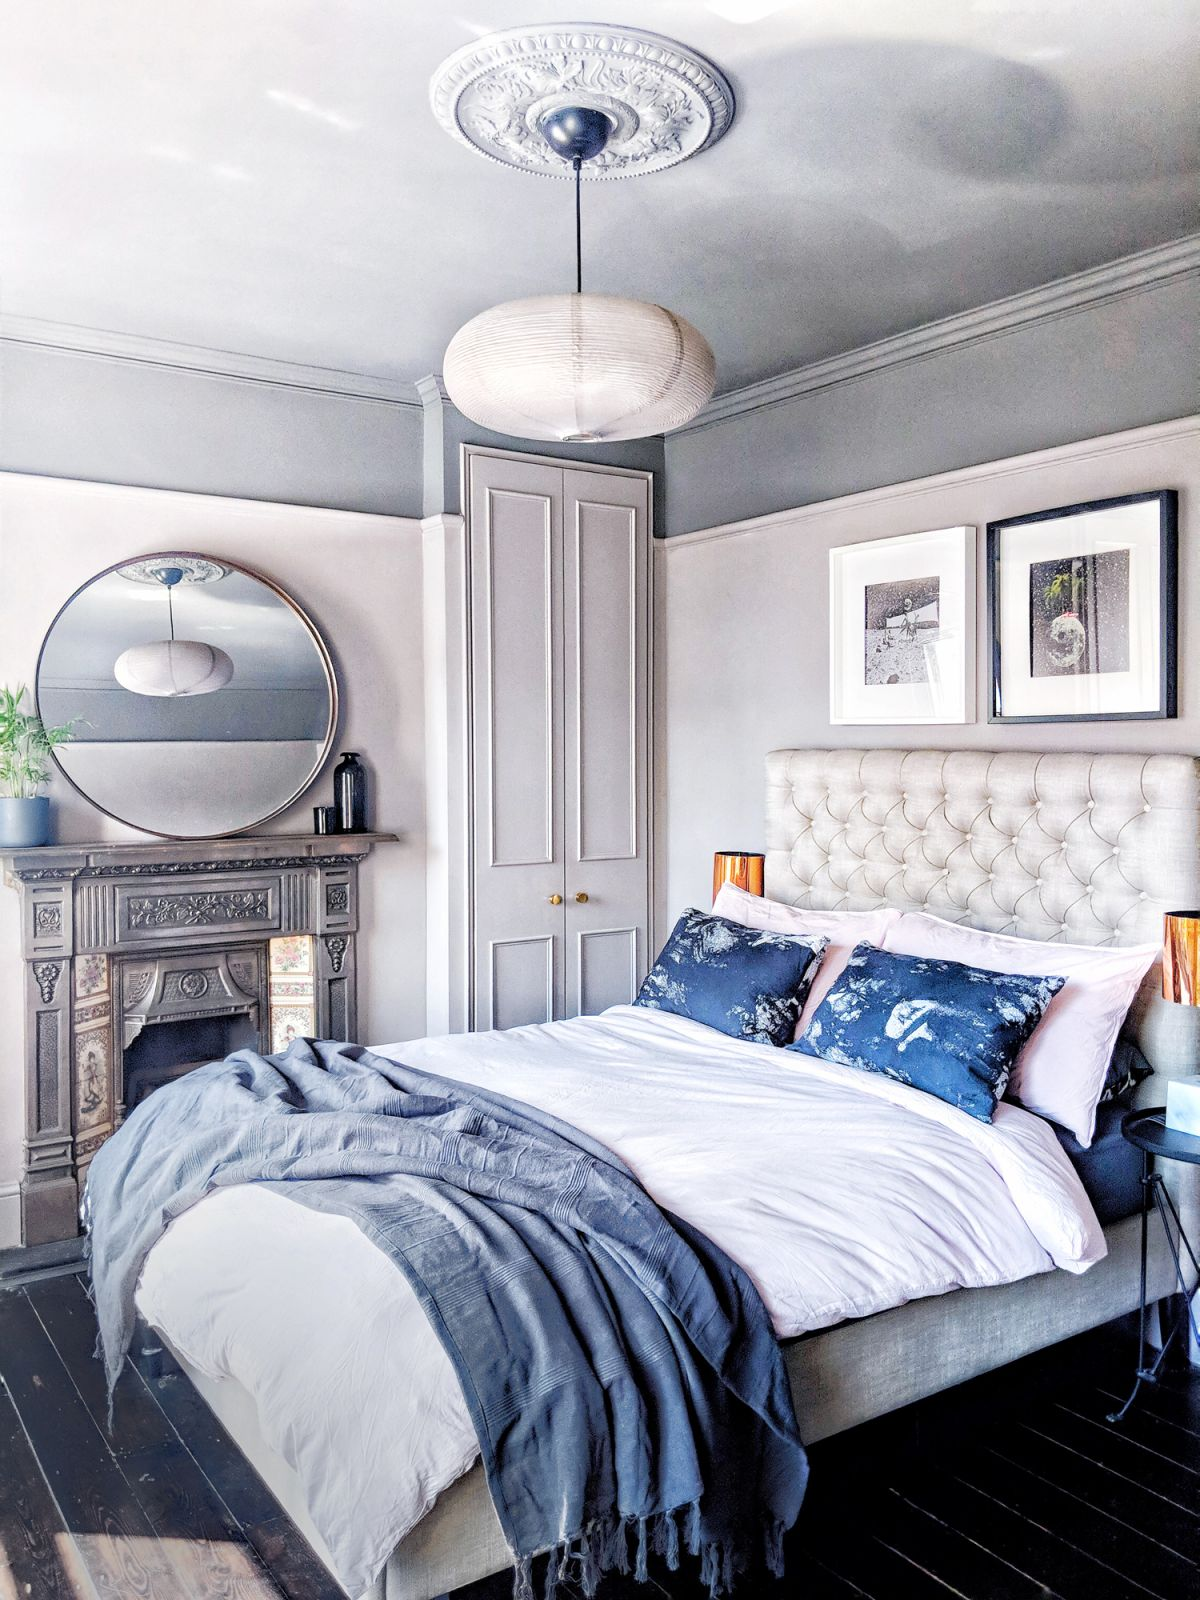 Alcove ideas: 8 ways to make the most of a small space  Real Homes